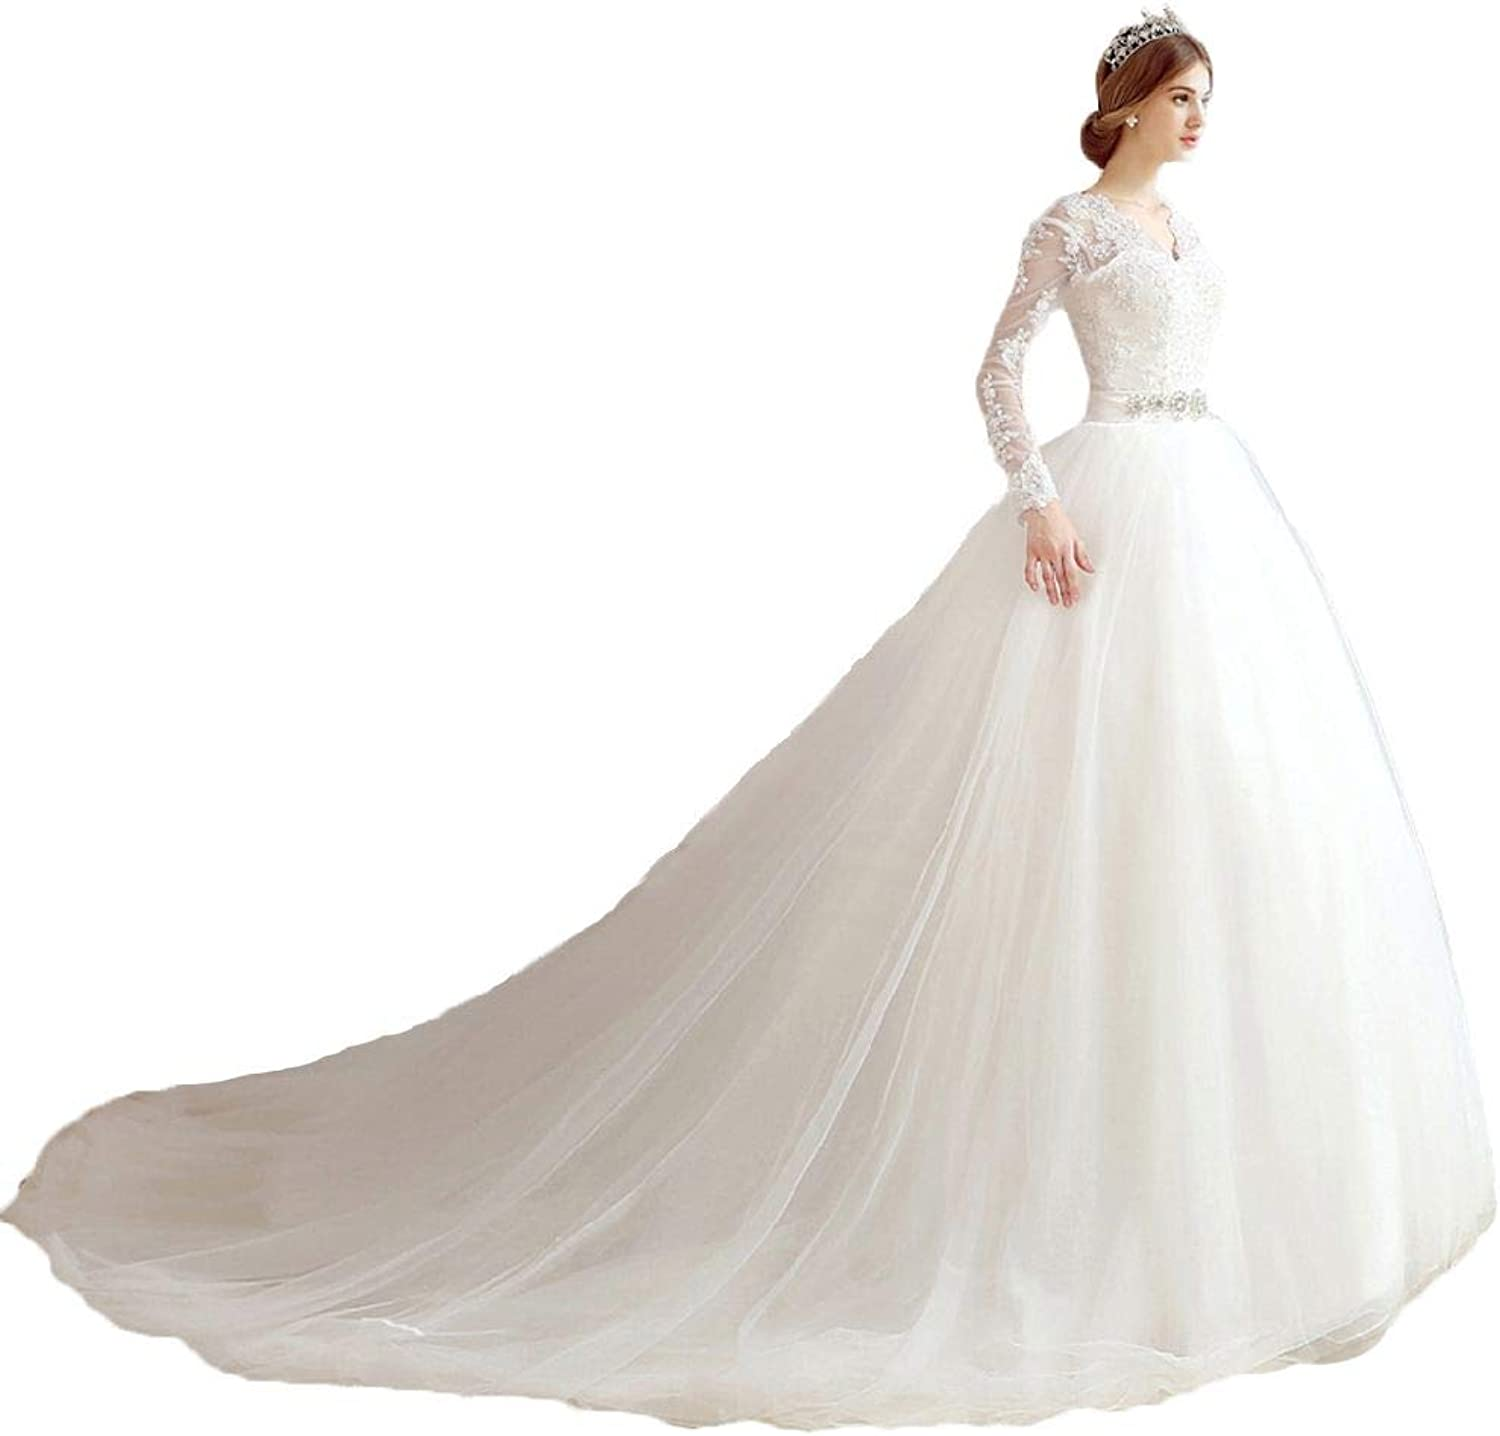 Snowskite Women's Elegant VNeck Aline Lace Ball Gown Wedding Dress